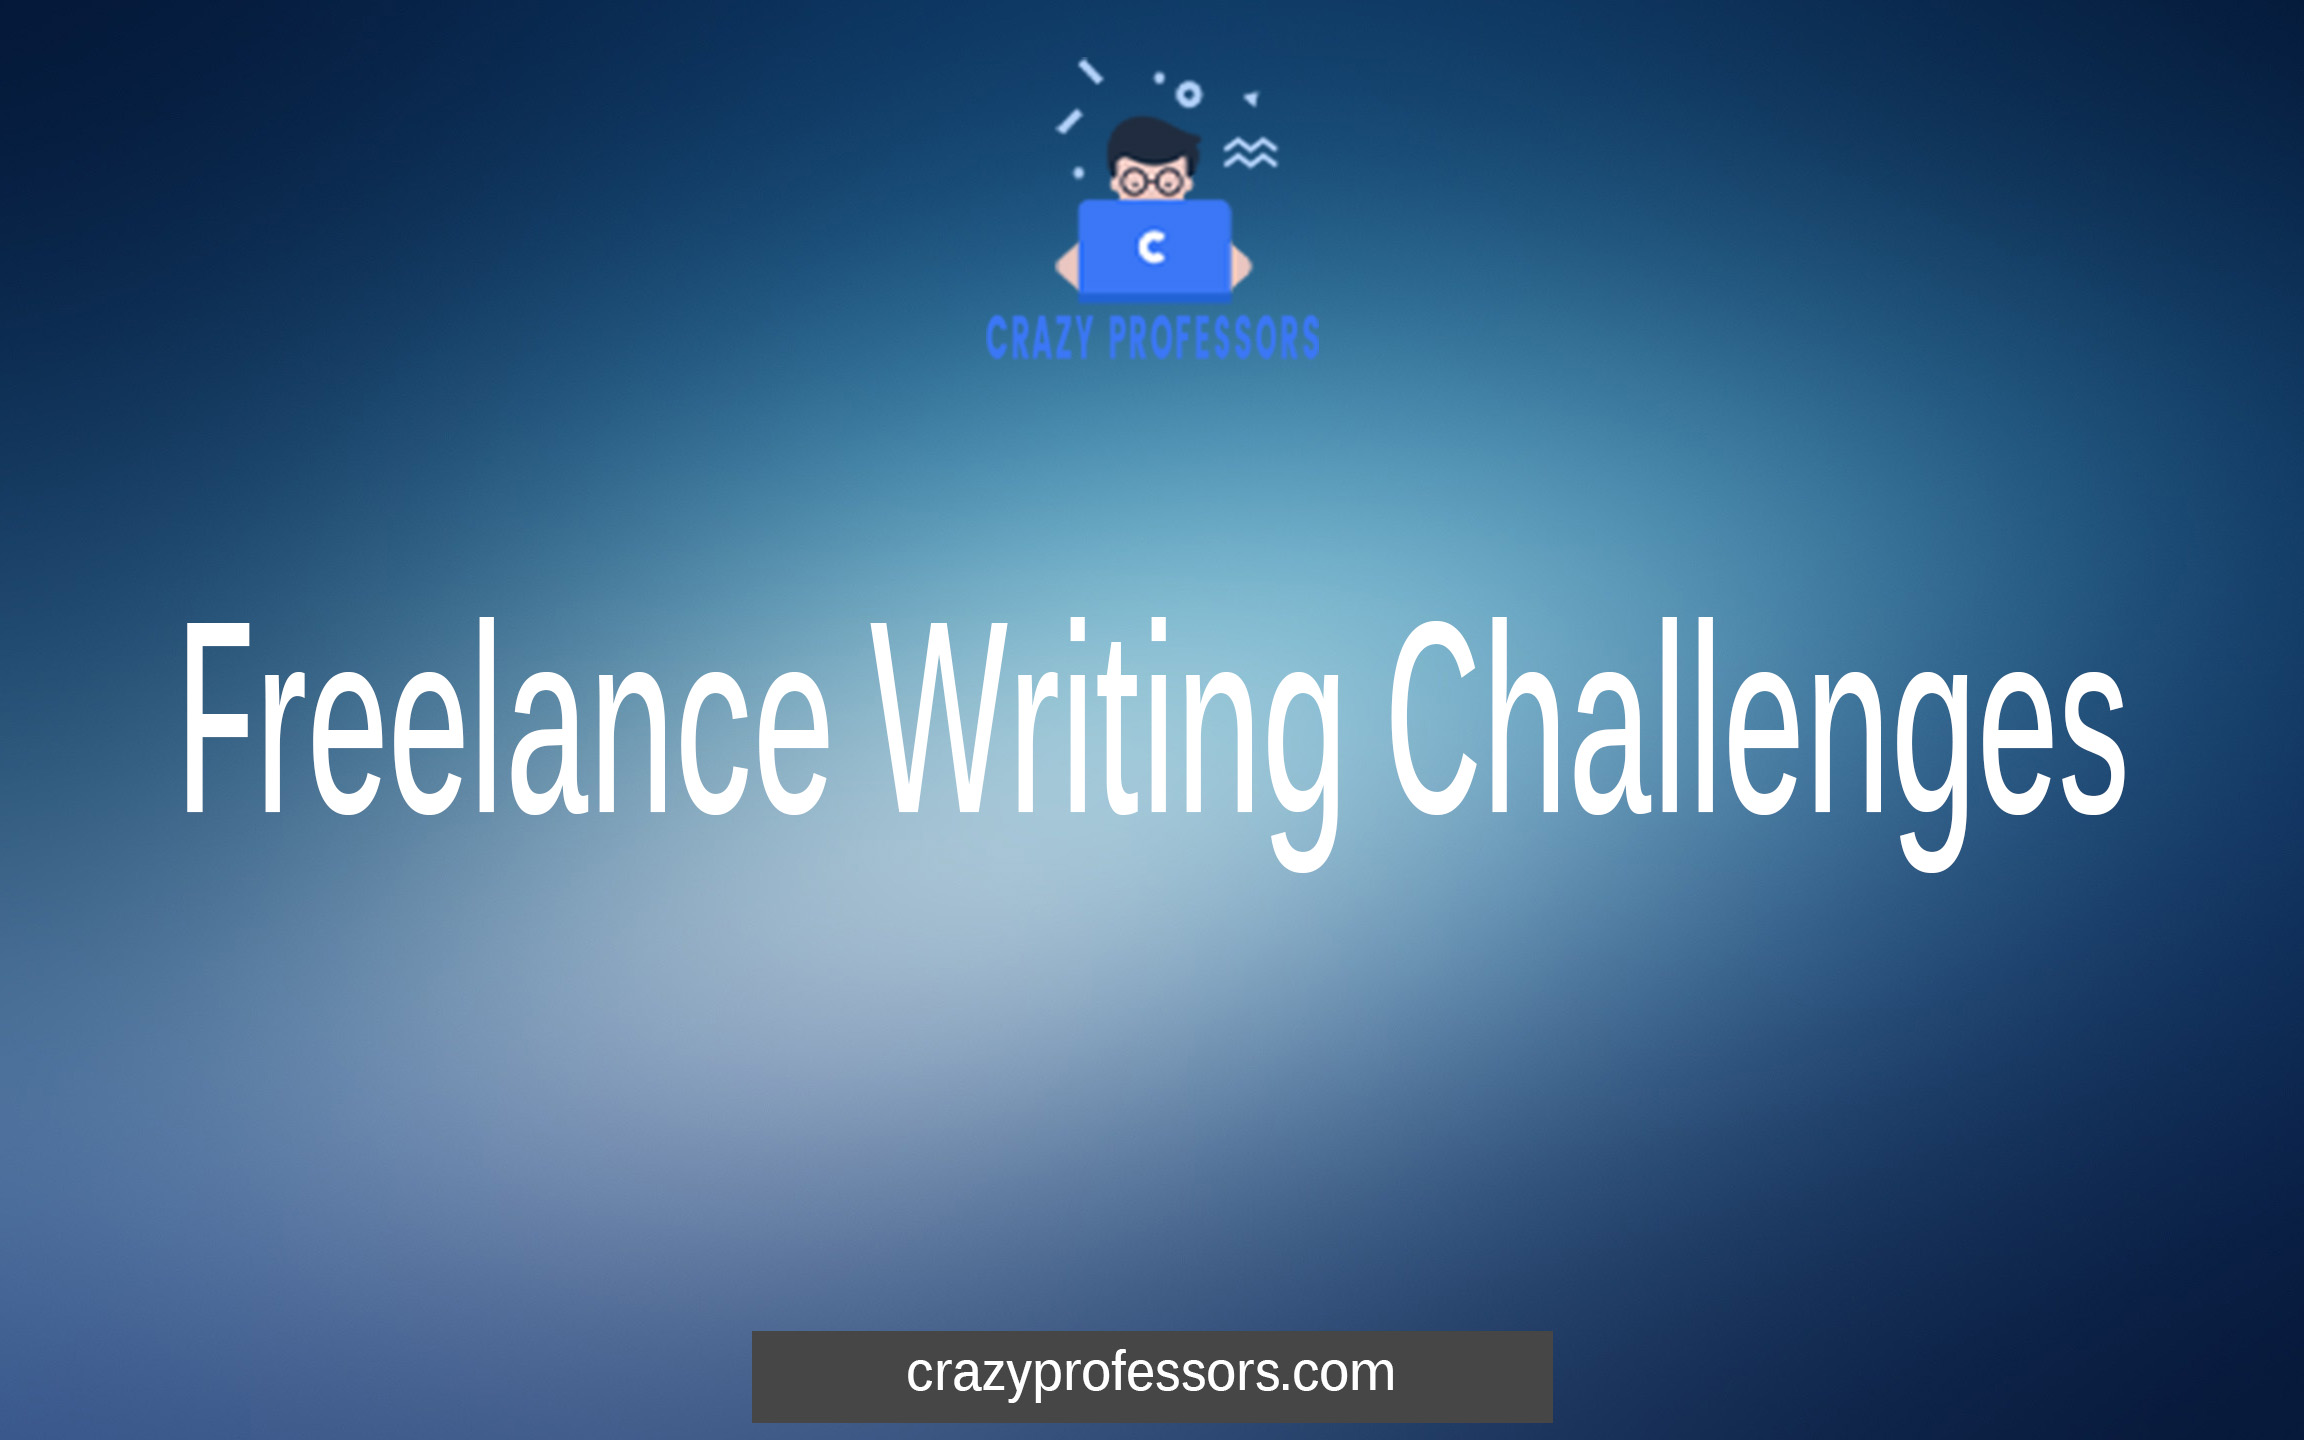 Freelance Writing Challenges